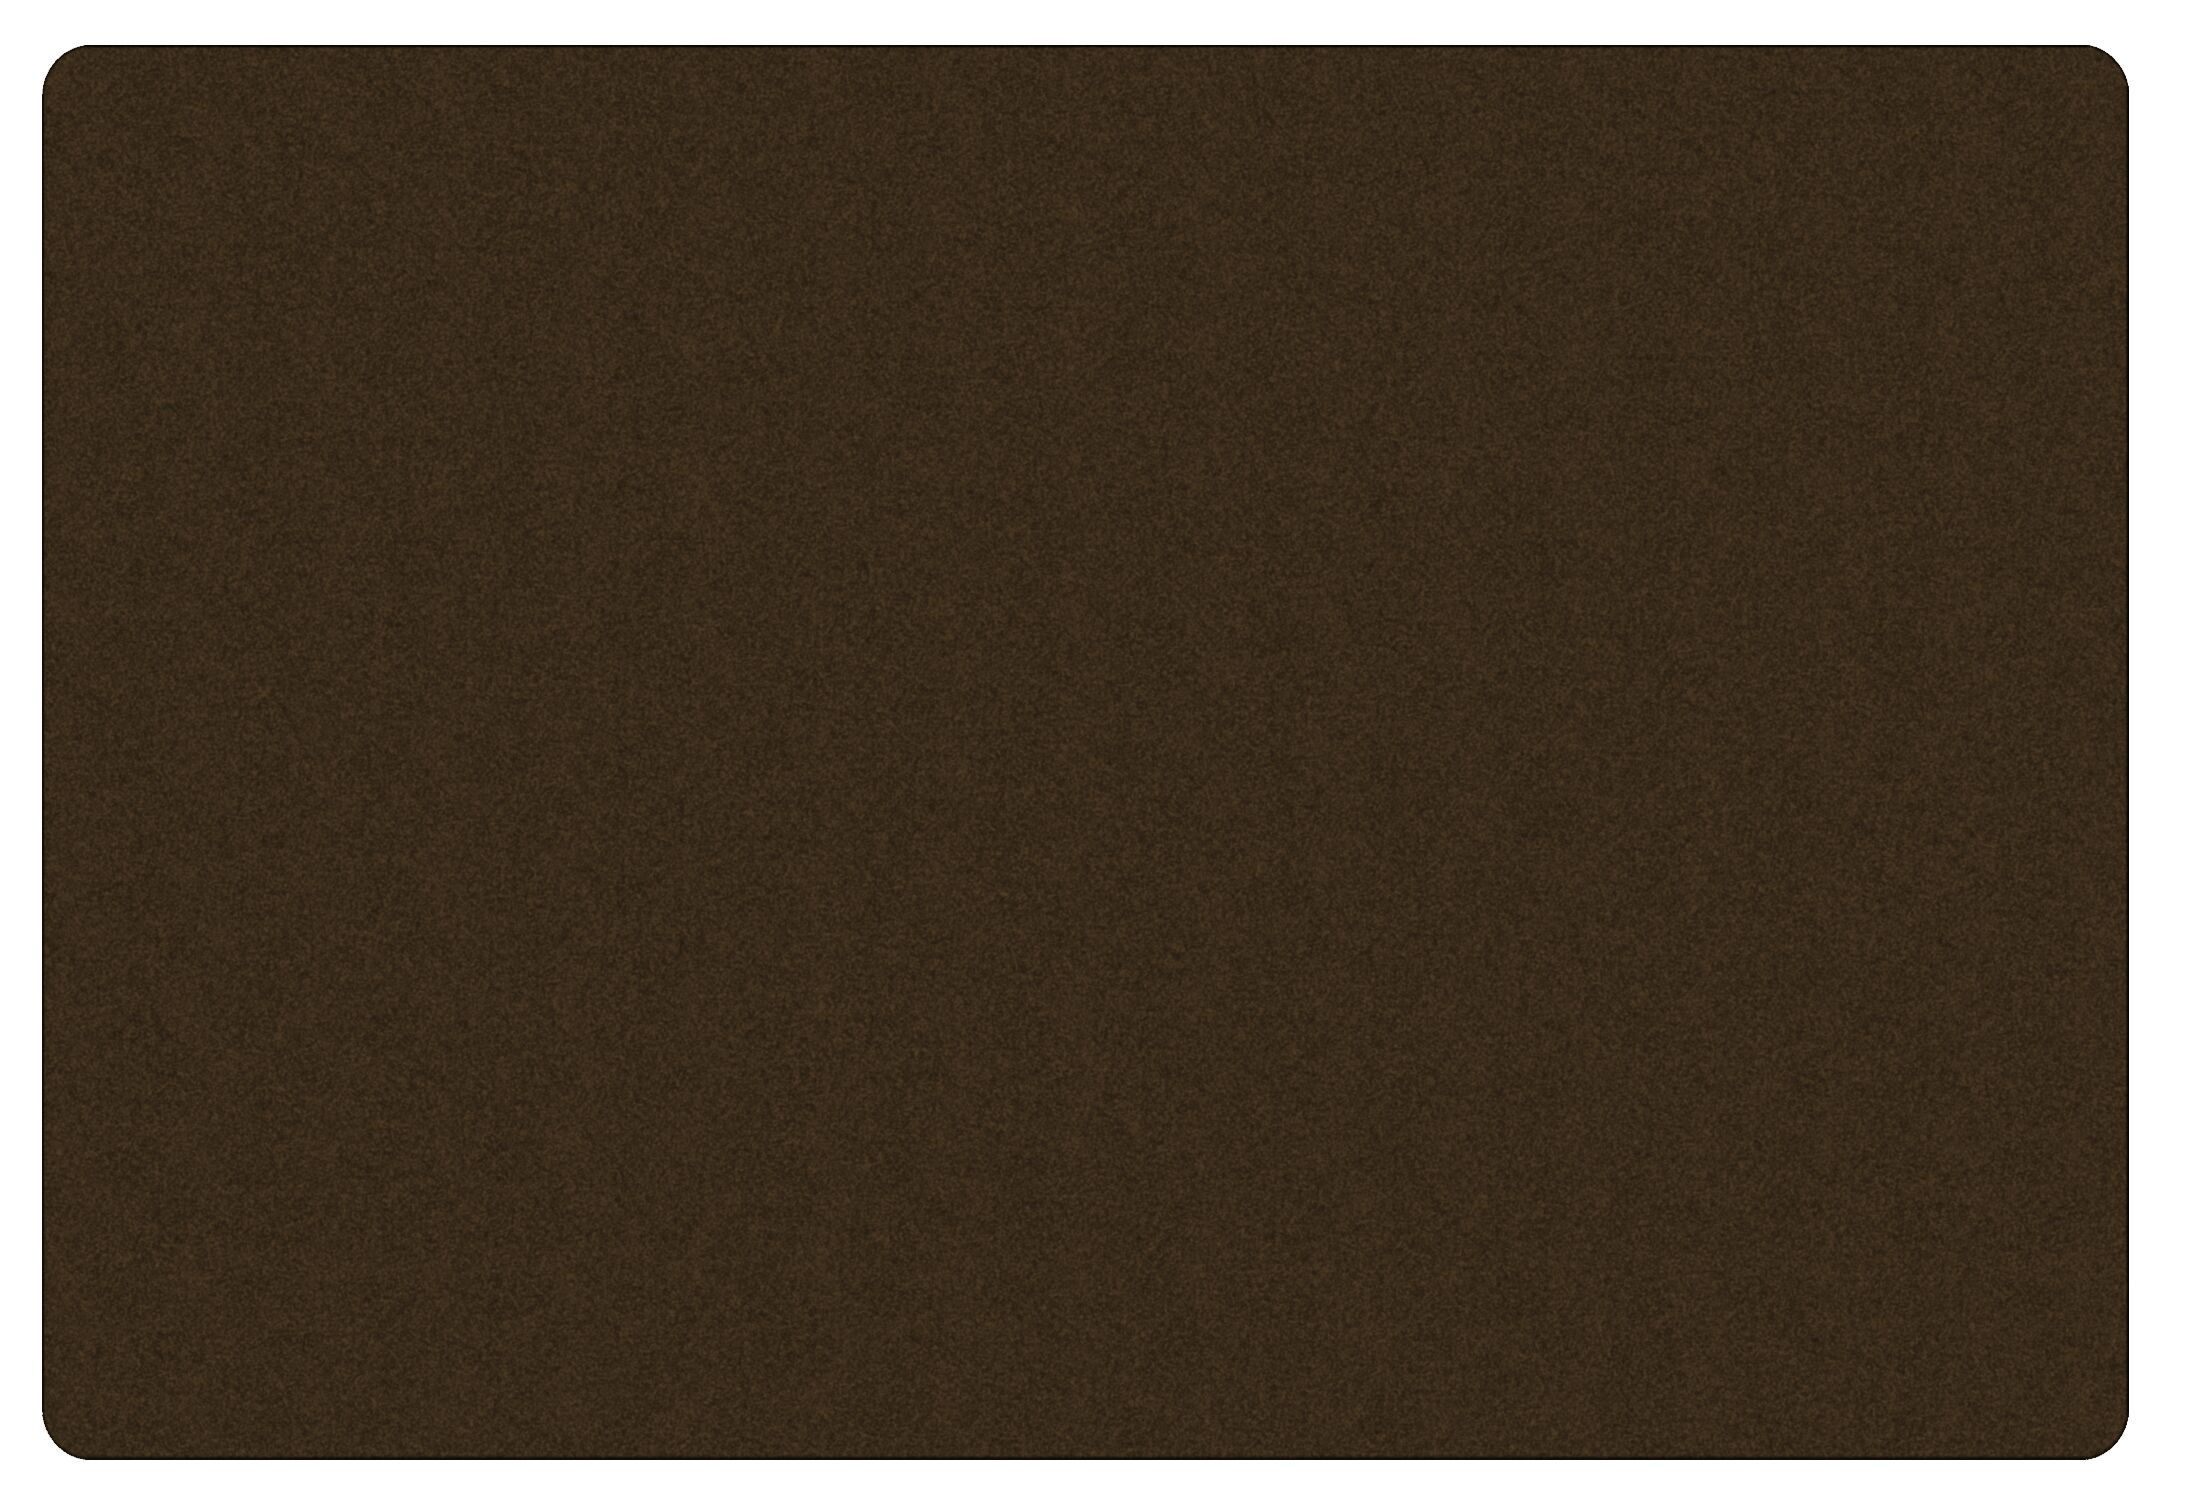 Americolors Chocolate Area Rug Rug Size: Rectangle 4' x 6'